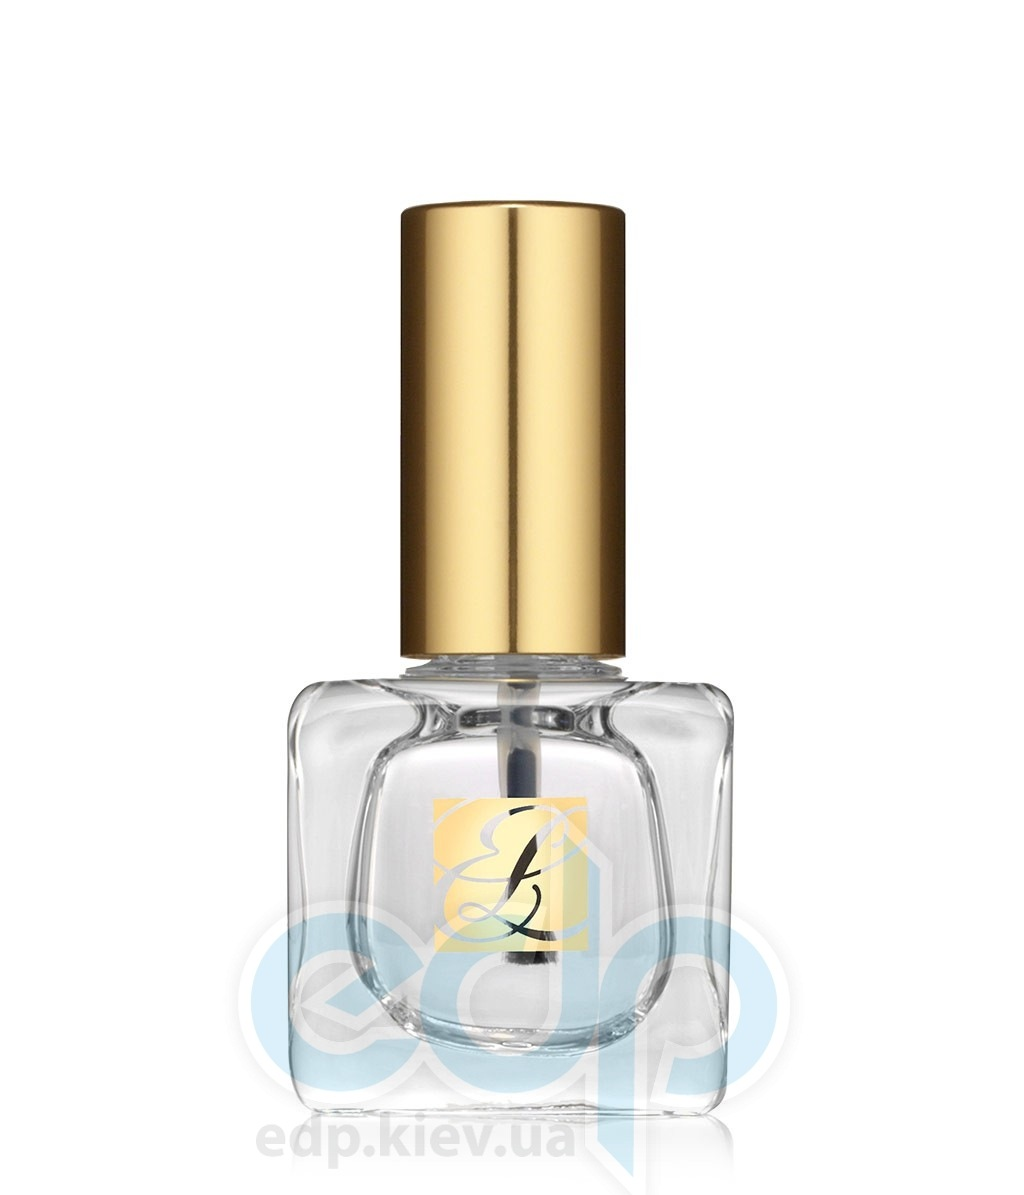 Лак-закрепитель Estee Lauder - Instant Finish - 9ml Tester